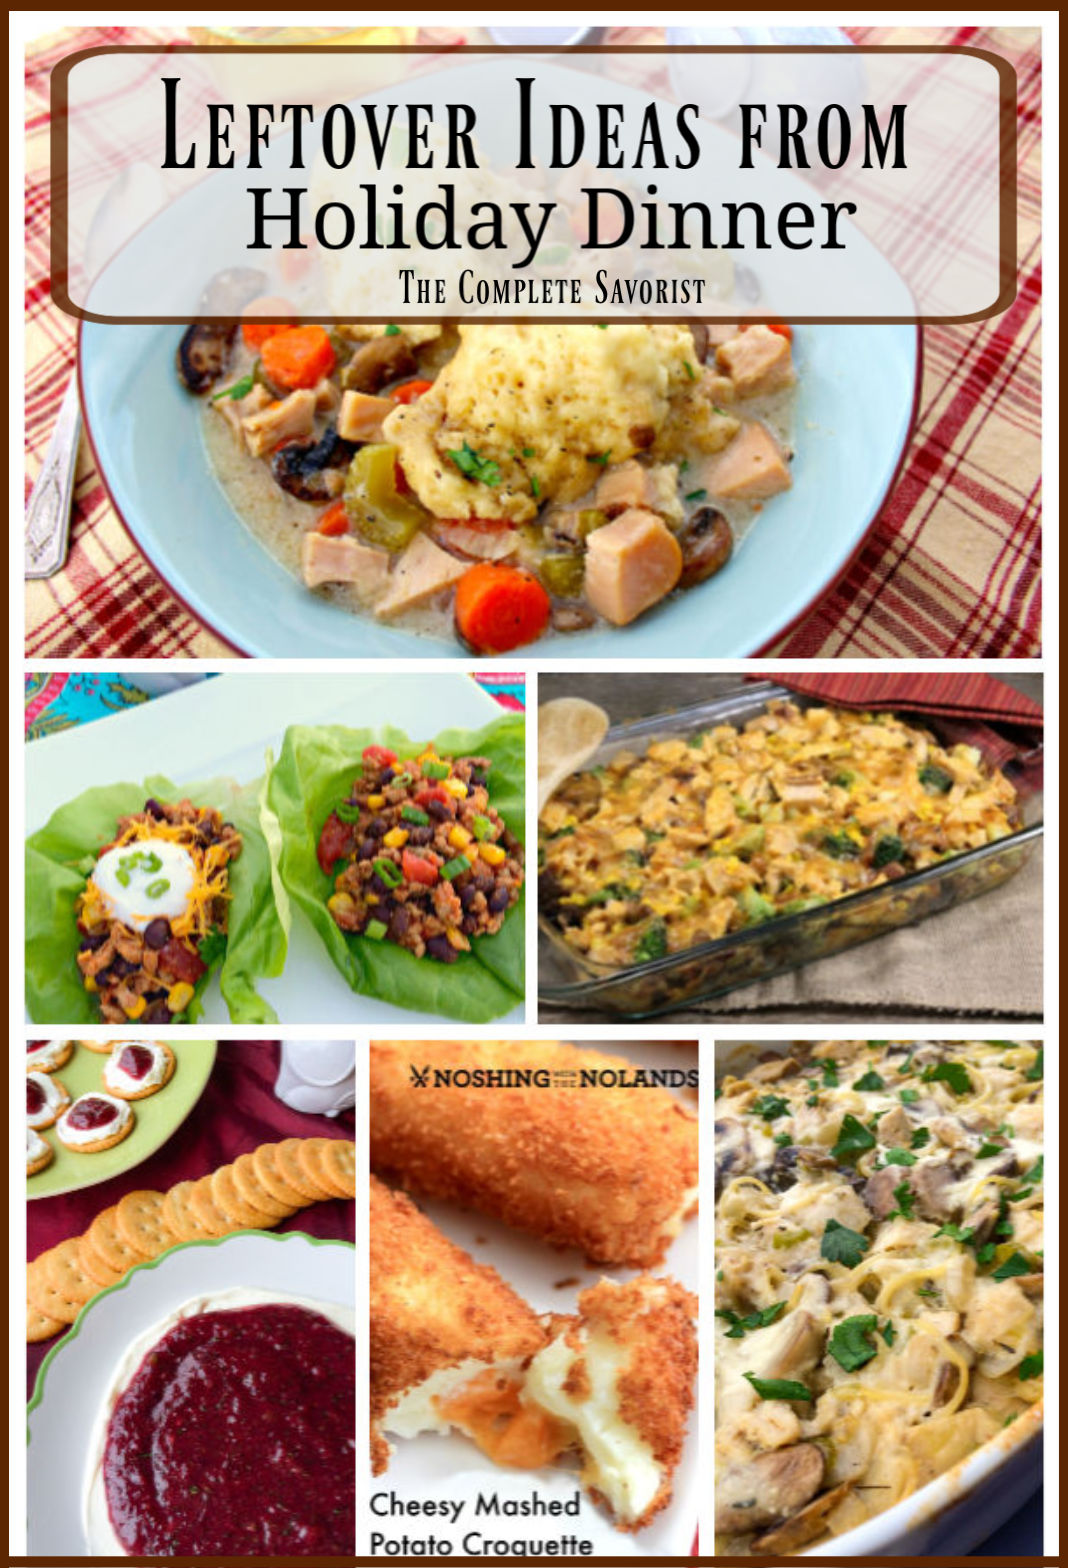 Picture collage of several recipes using holiday leftovers.